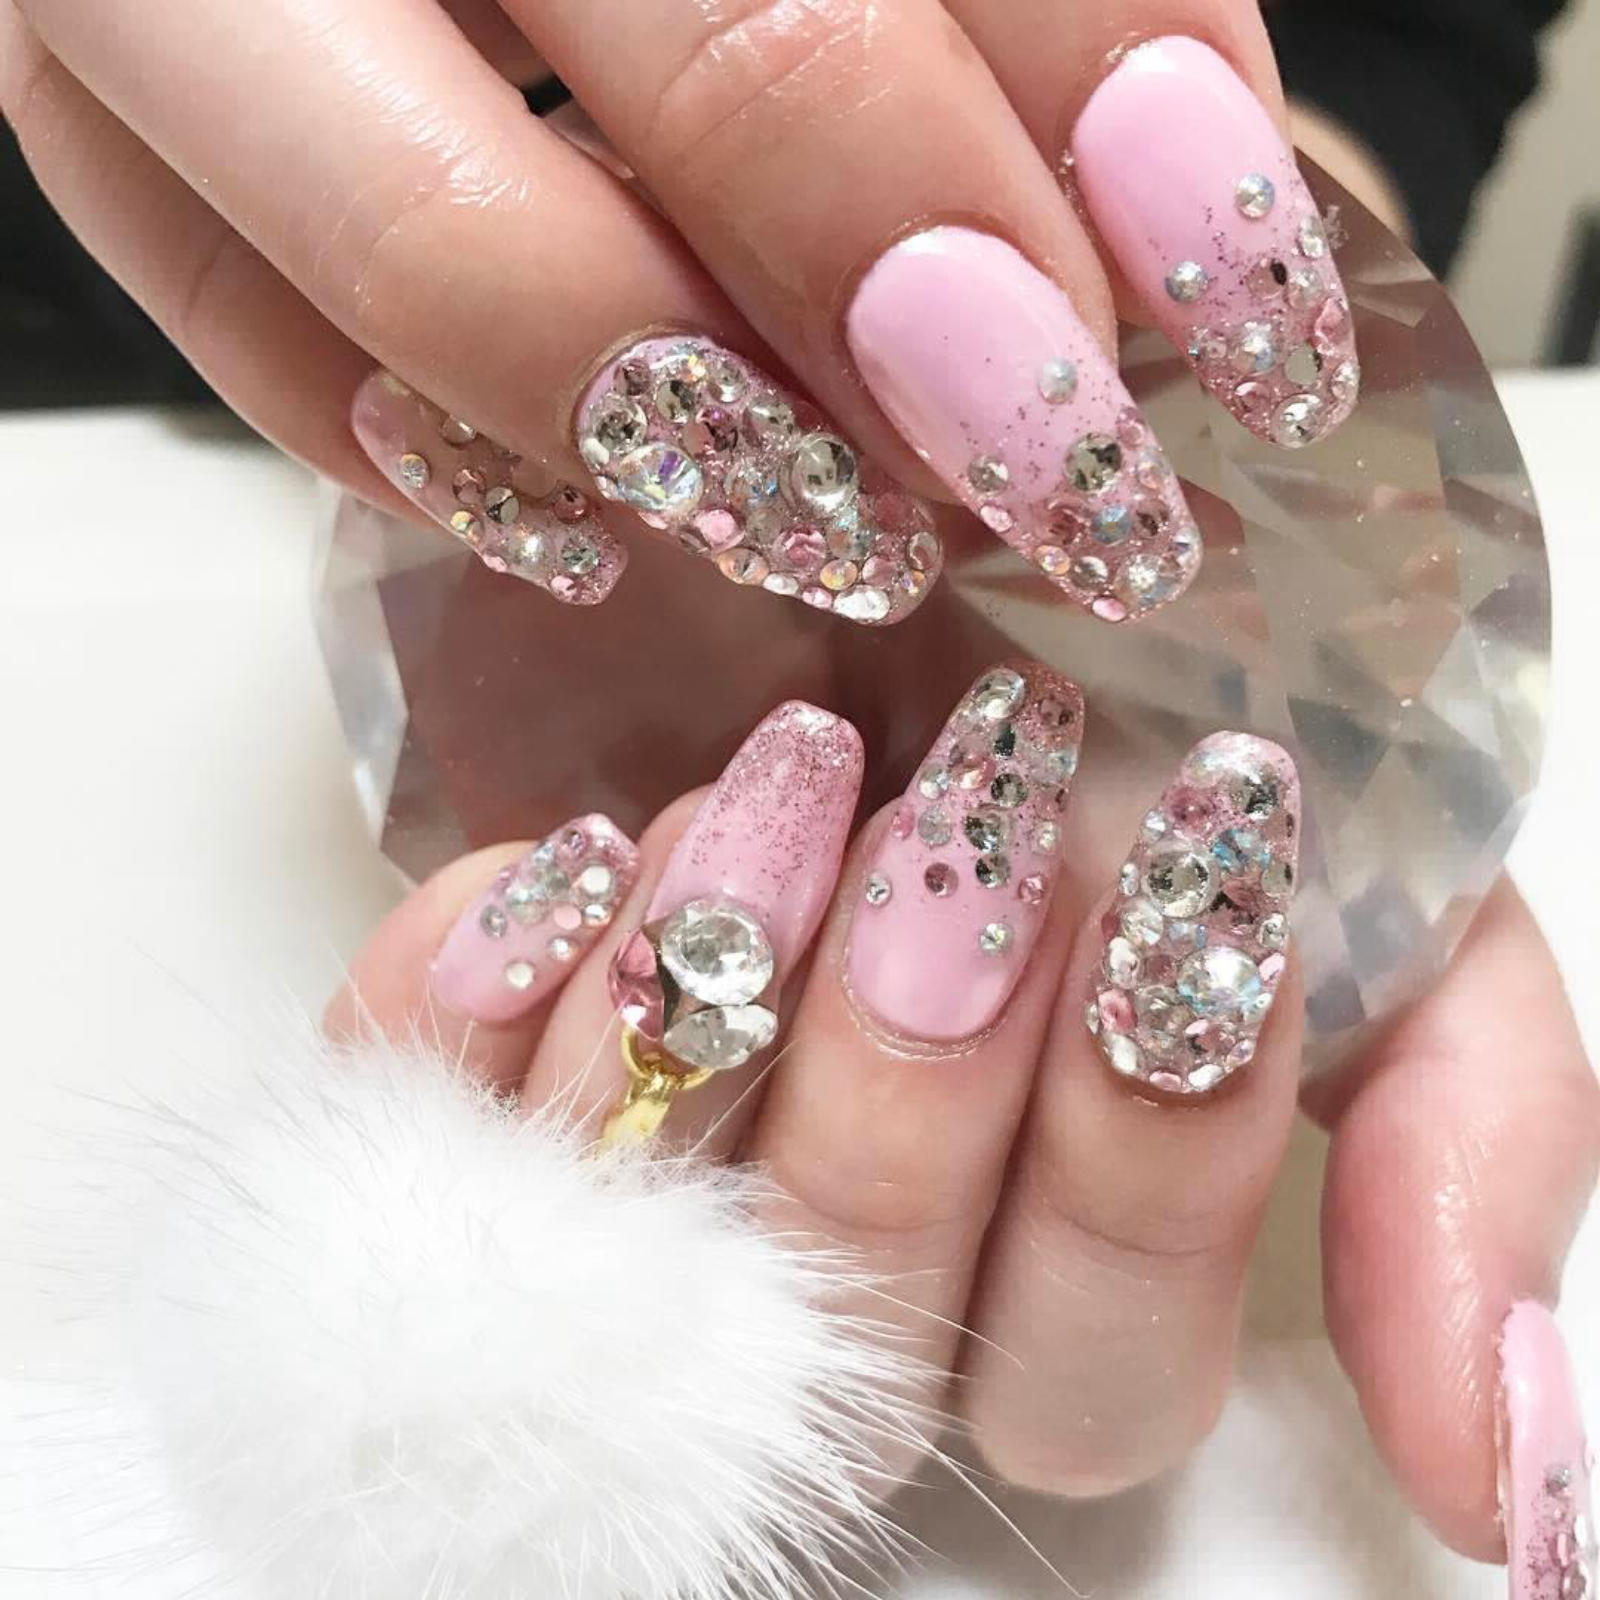 Top 5 Foreigner-Friendly Nail Salons in Shibuya - Odigo